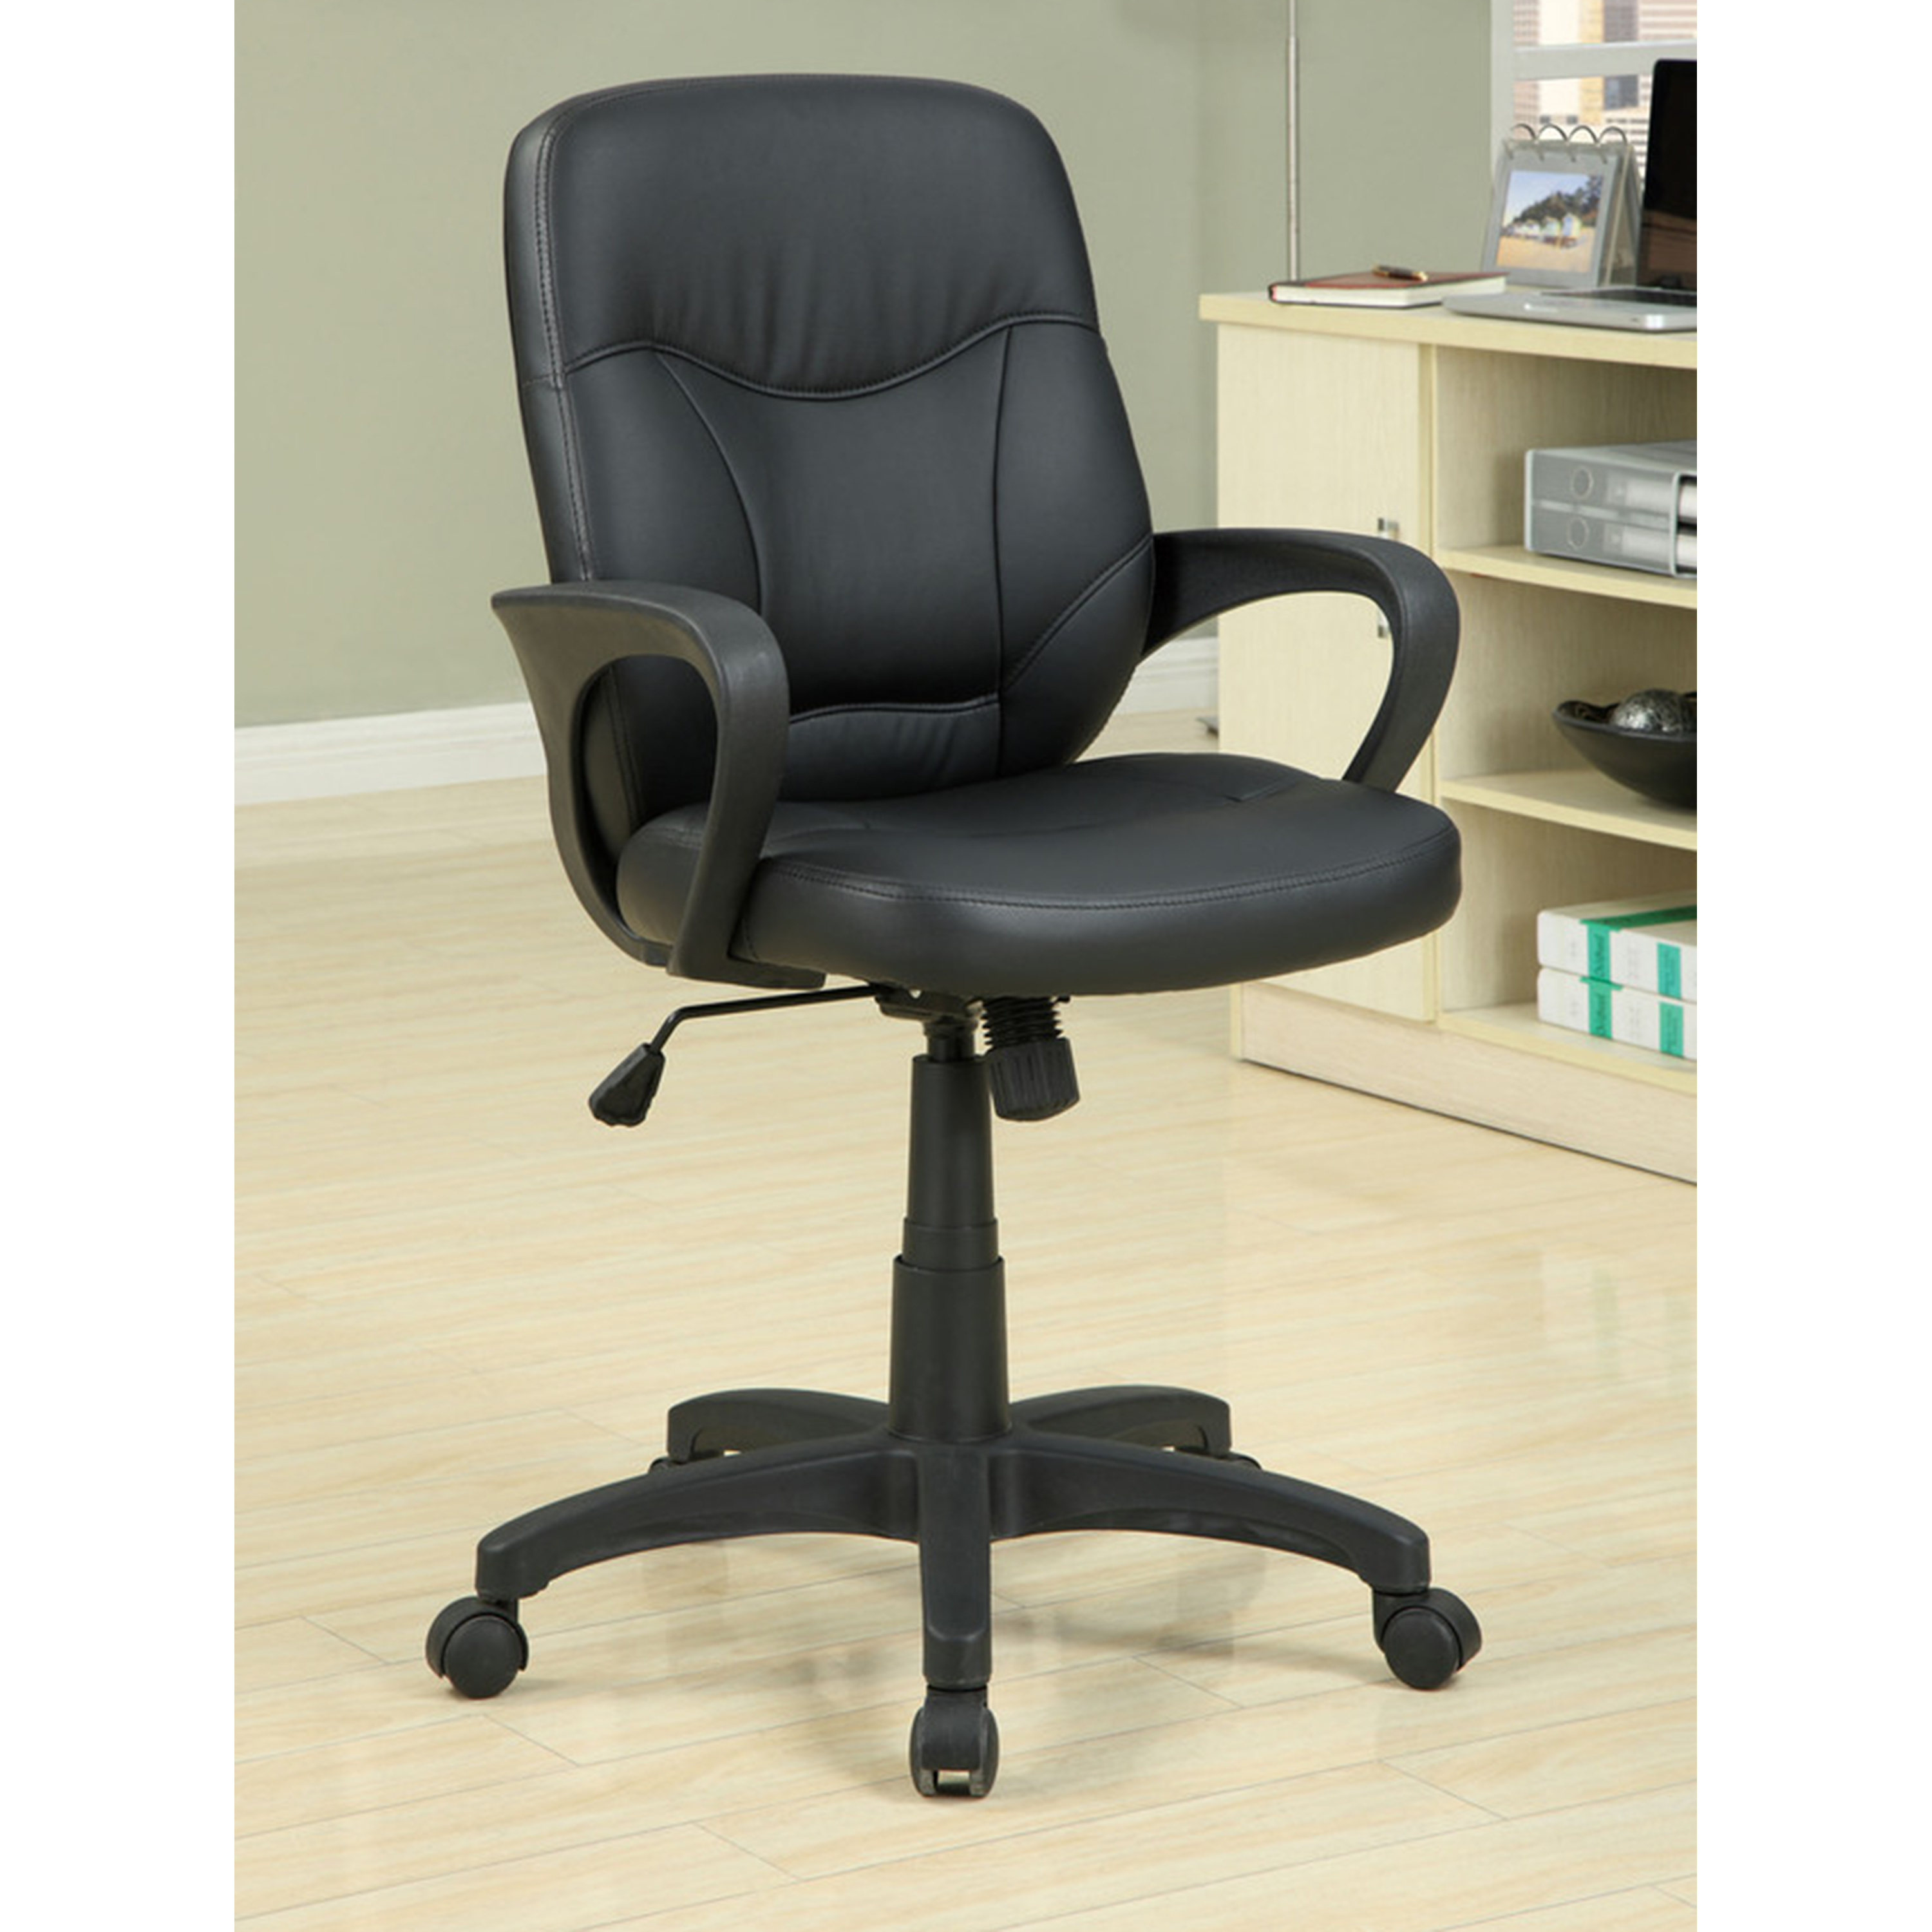 Spinning Chair Venetian Worldwide Stratford Leatherette Office Chair In Black